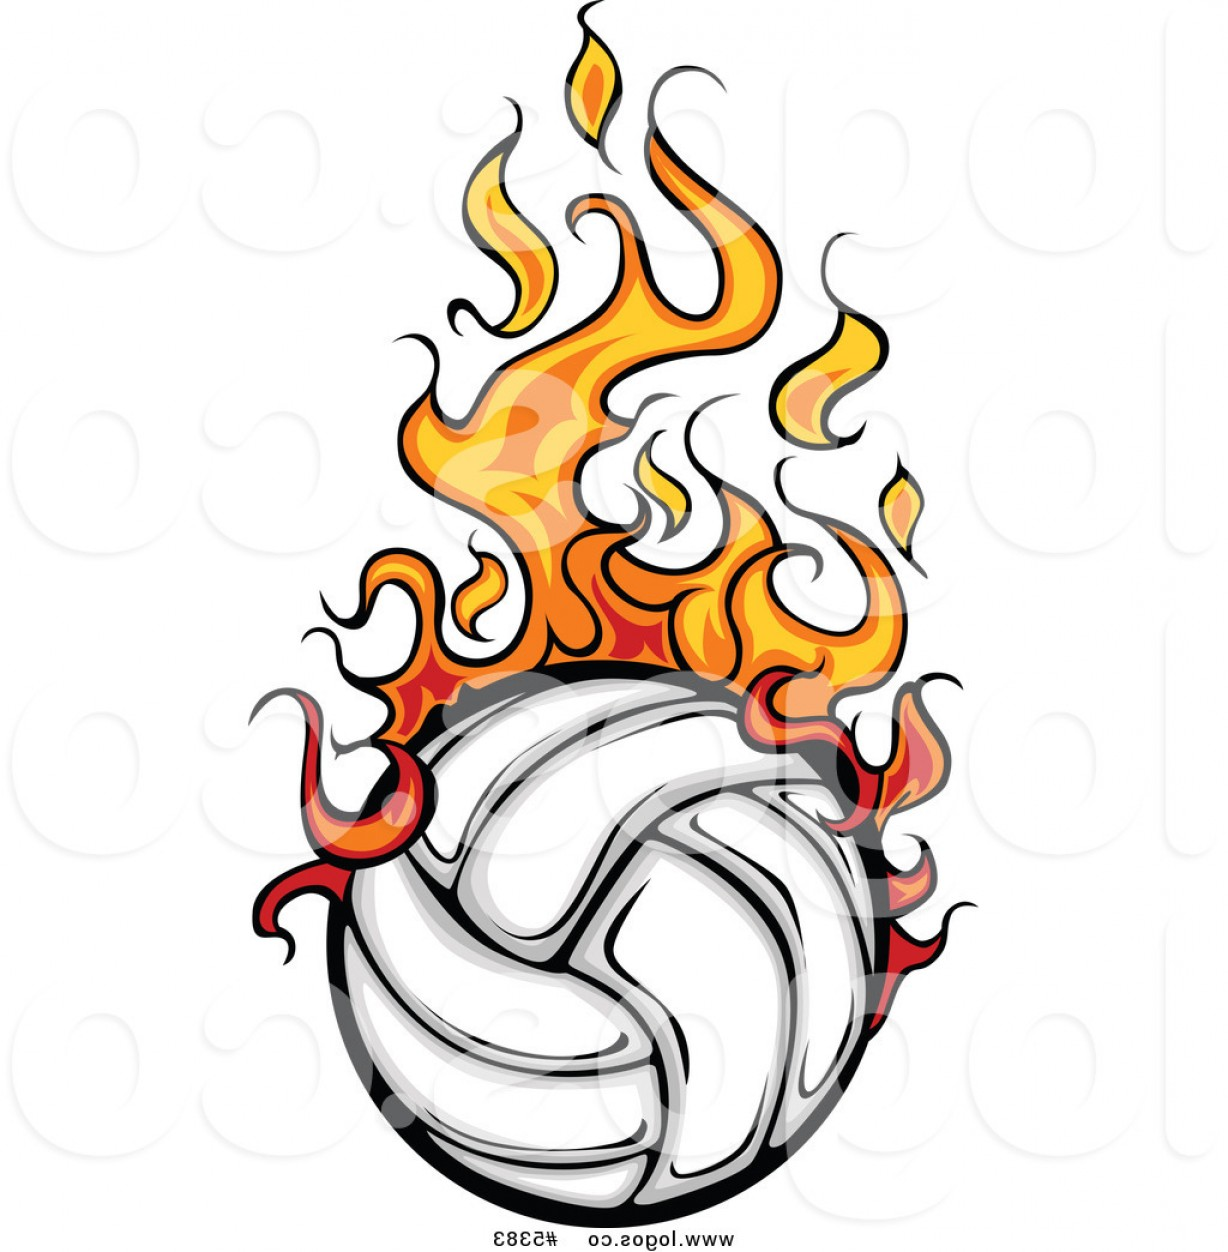 Volleyball Vector Logo: Royalty Free Vector Of A Logo Of A Flaming White Volleyball By Chromaco